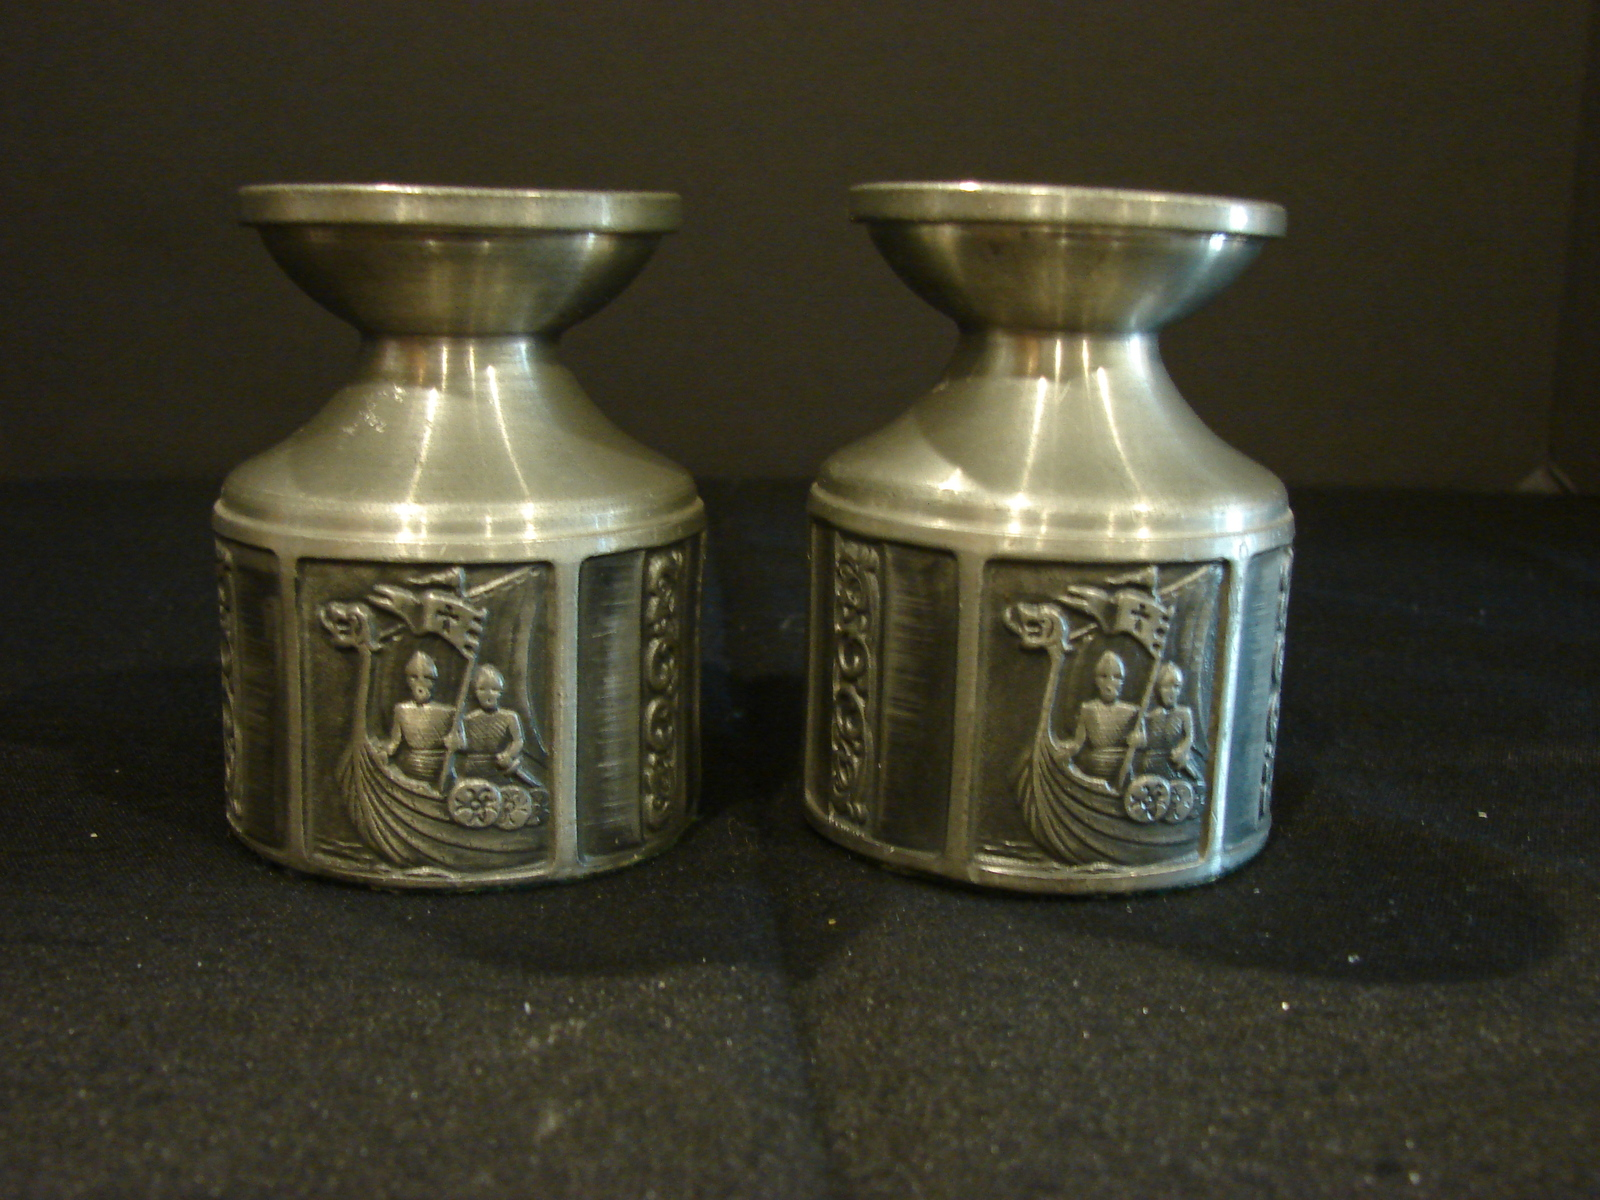 Norway Oslo Pair of Miniature Norwegian Steen and Strom Candlestick Holders Brass Dollhouse Candlesticks